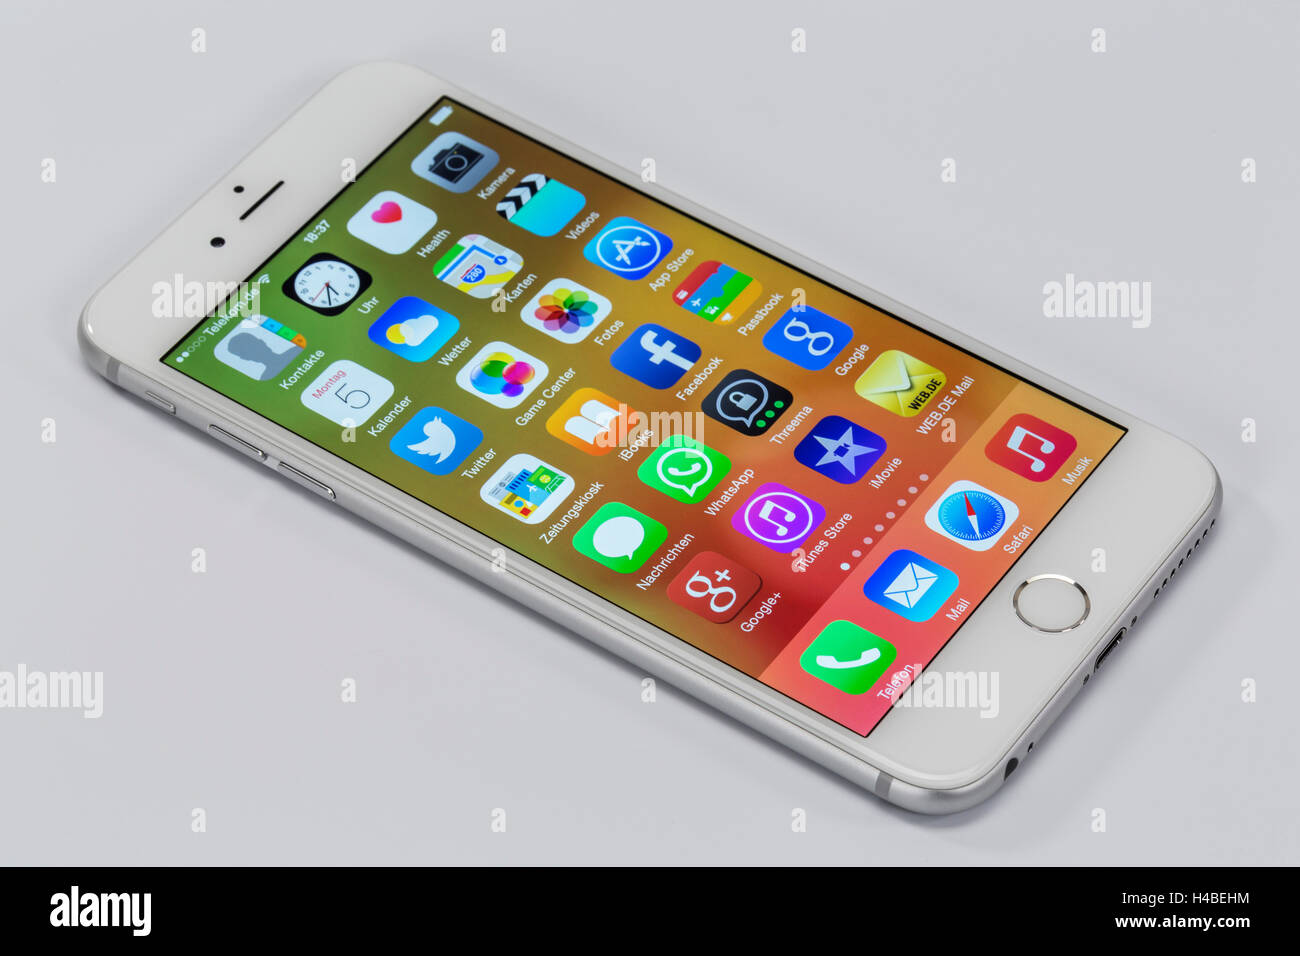 Apple iPhone 6 plus, display, Apps, programs, multi-touch function, - Stock Image